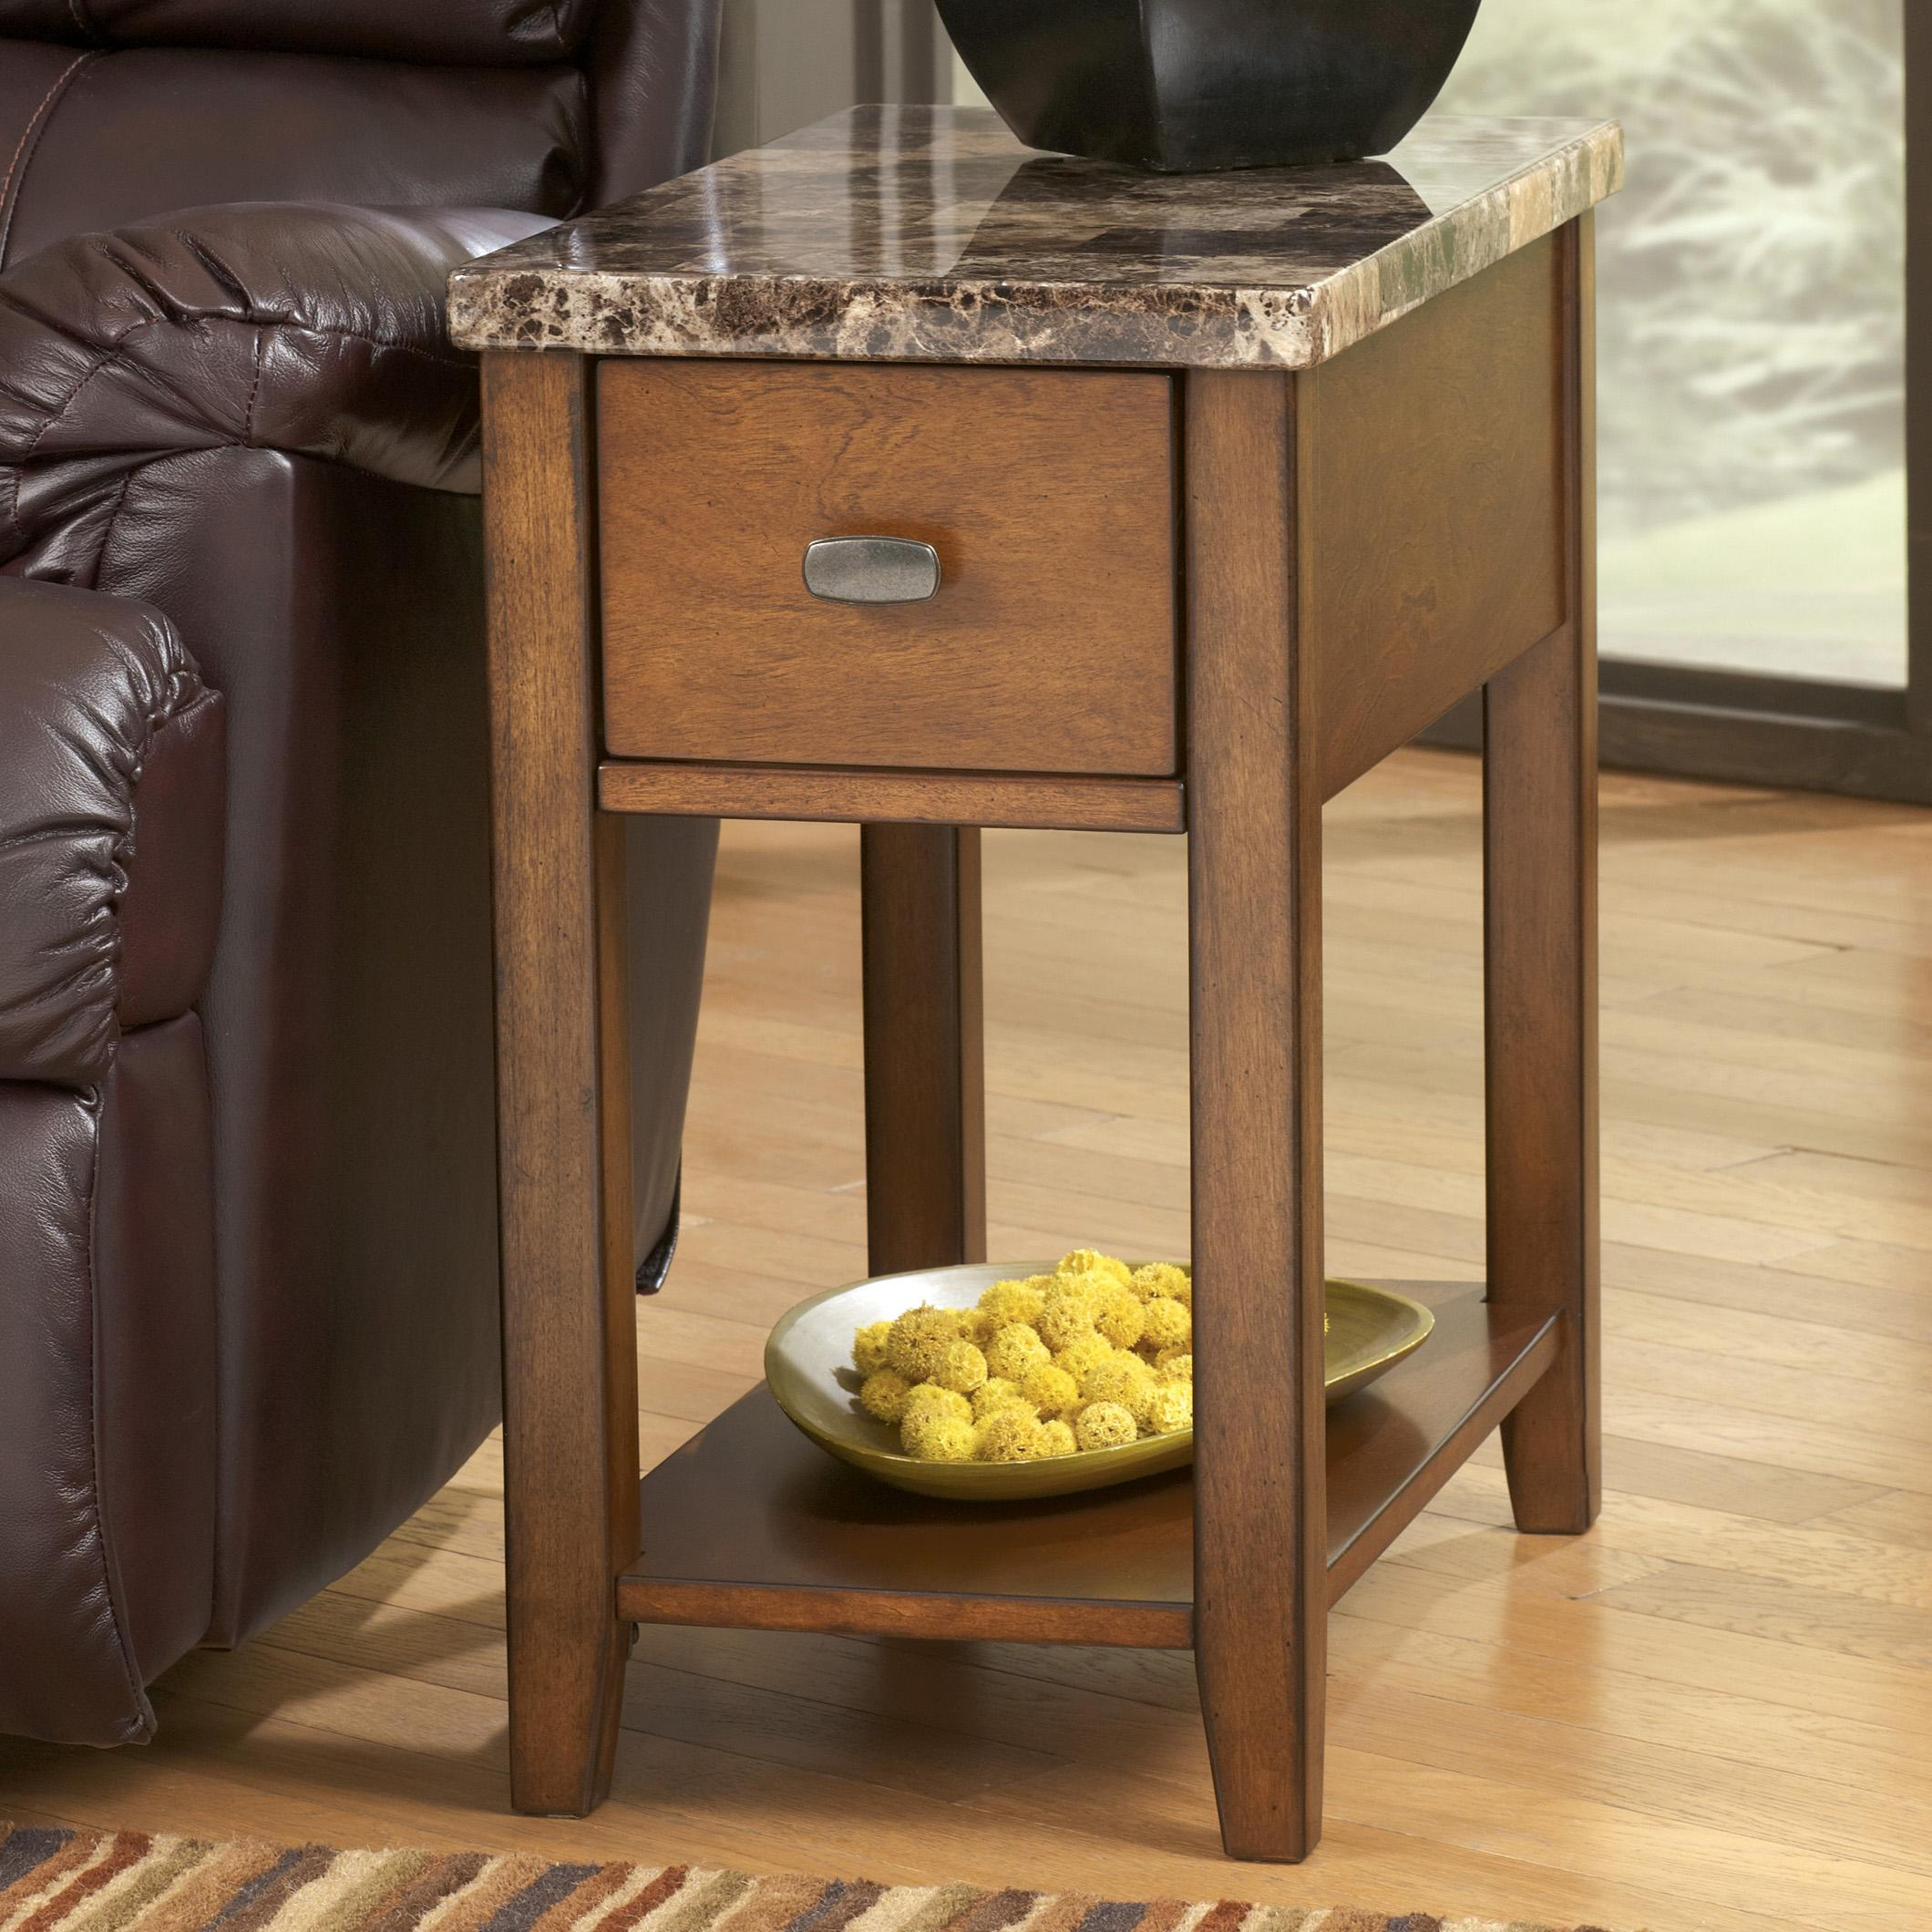 Breegin Chairside End Table by Signature Design by Ashley at Rife's Home Furniture